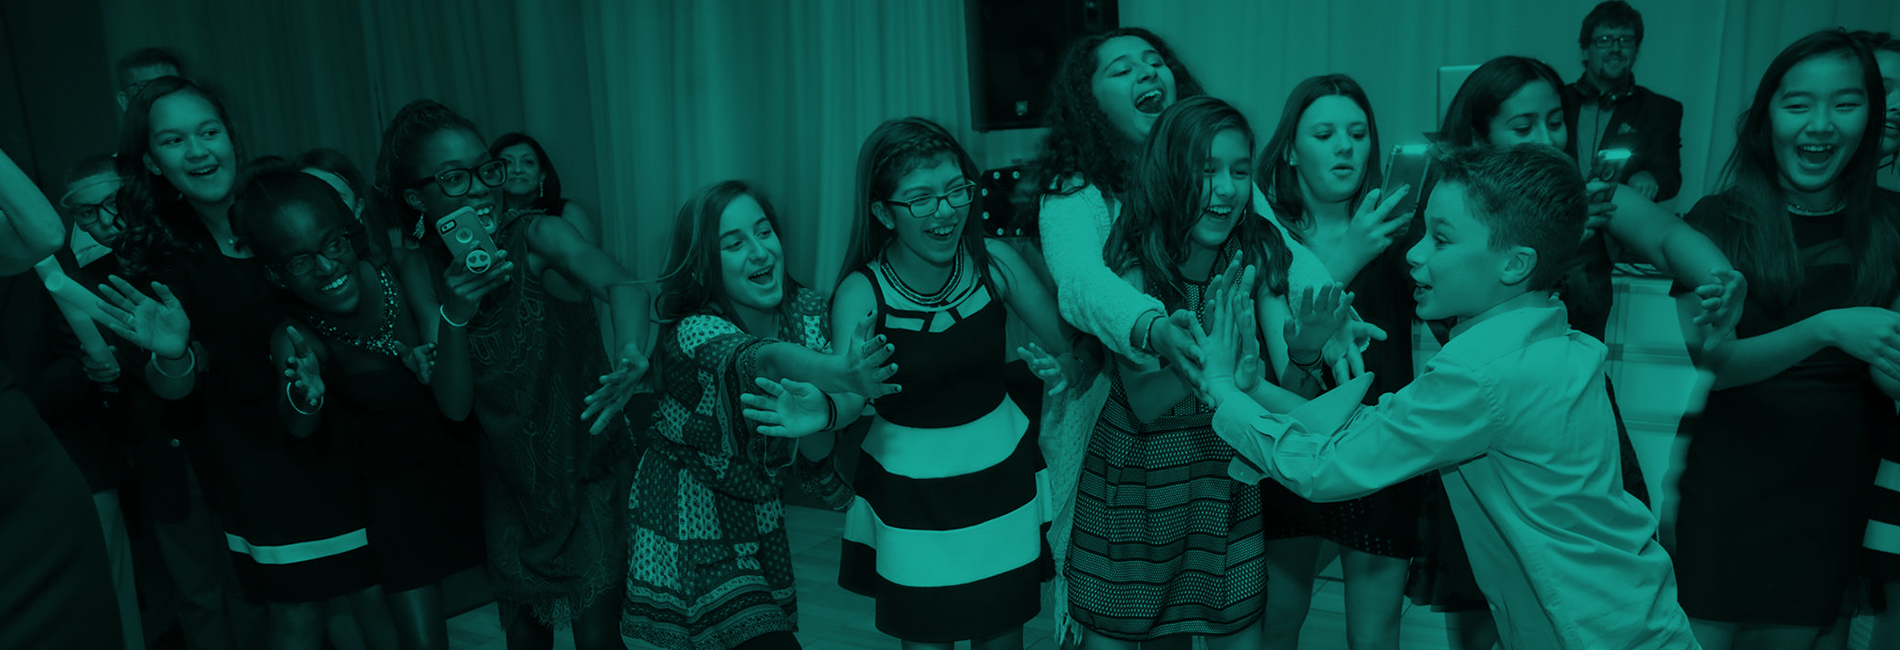 Bar & Bat Mitzvah section header image.